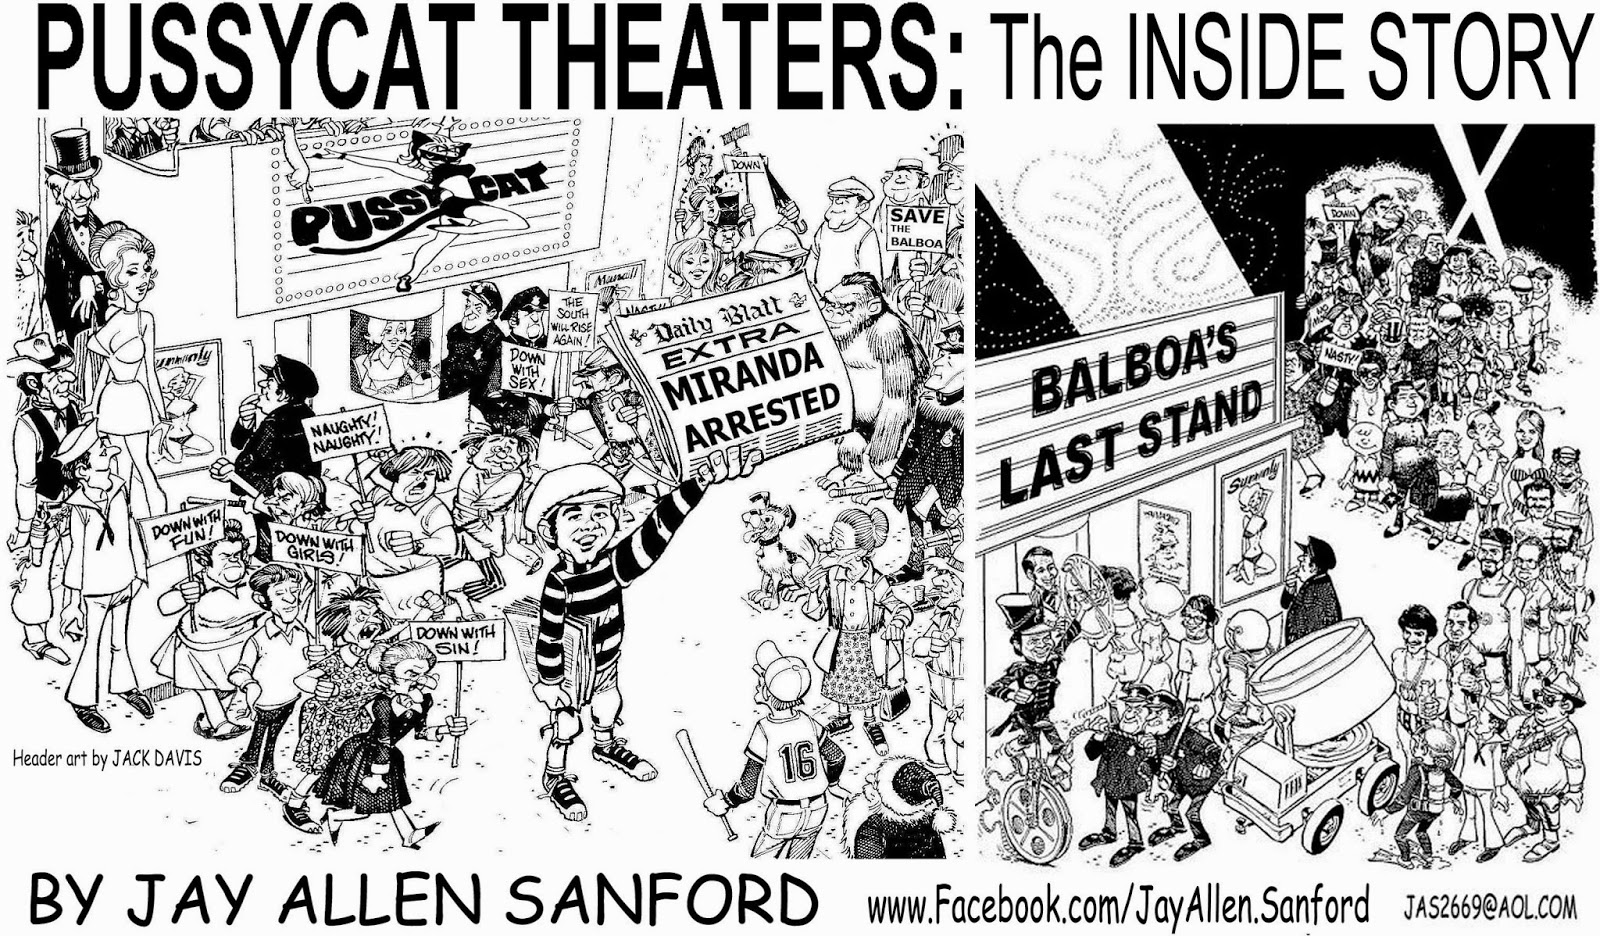 Pussycat Theaters The Inside Story Page 2 Of 15 Will REAL Mr Tate Please Stand Up